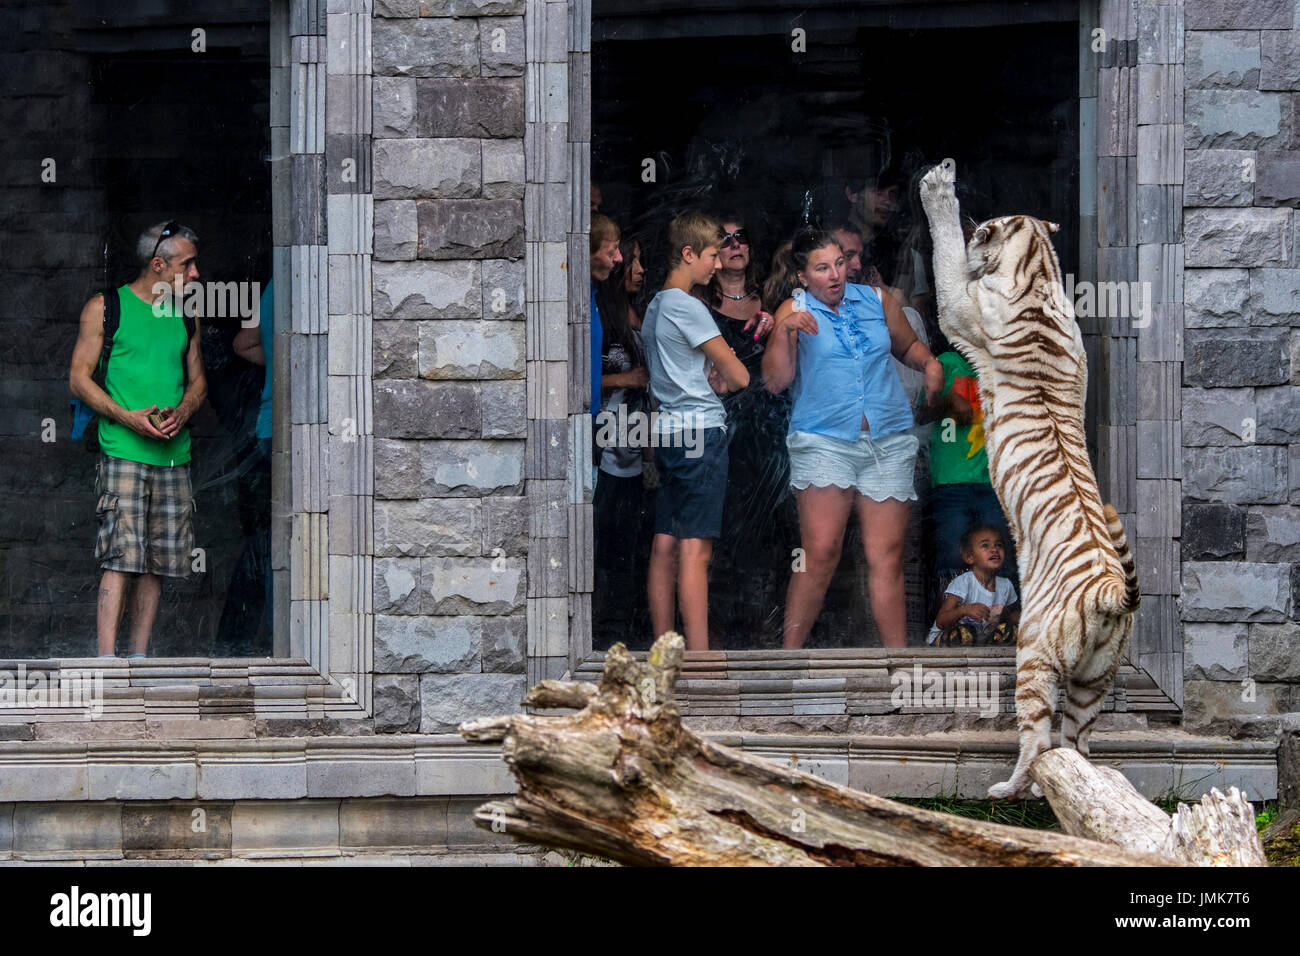 White tiger / bleached tiger (Panthera tigris) trying to attack frightened visitors behind glass pane in zoo - Stock Image